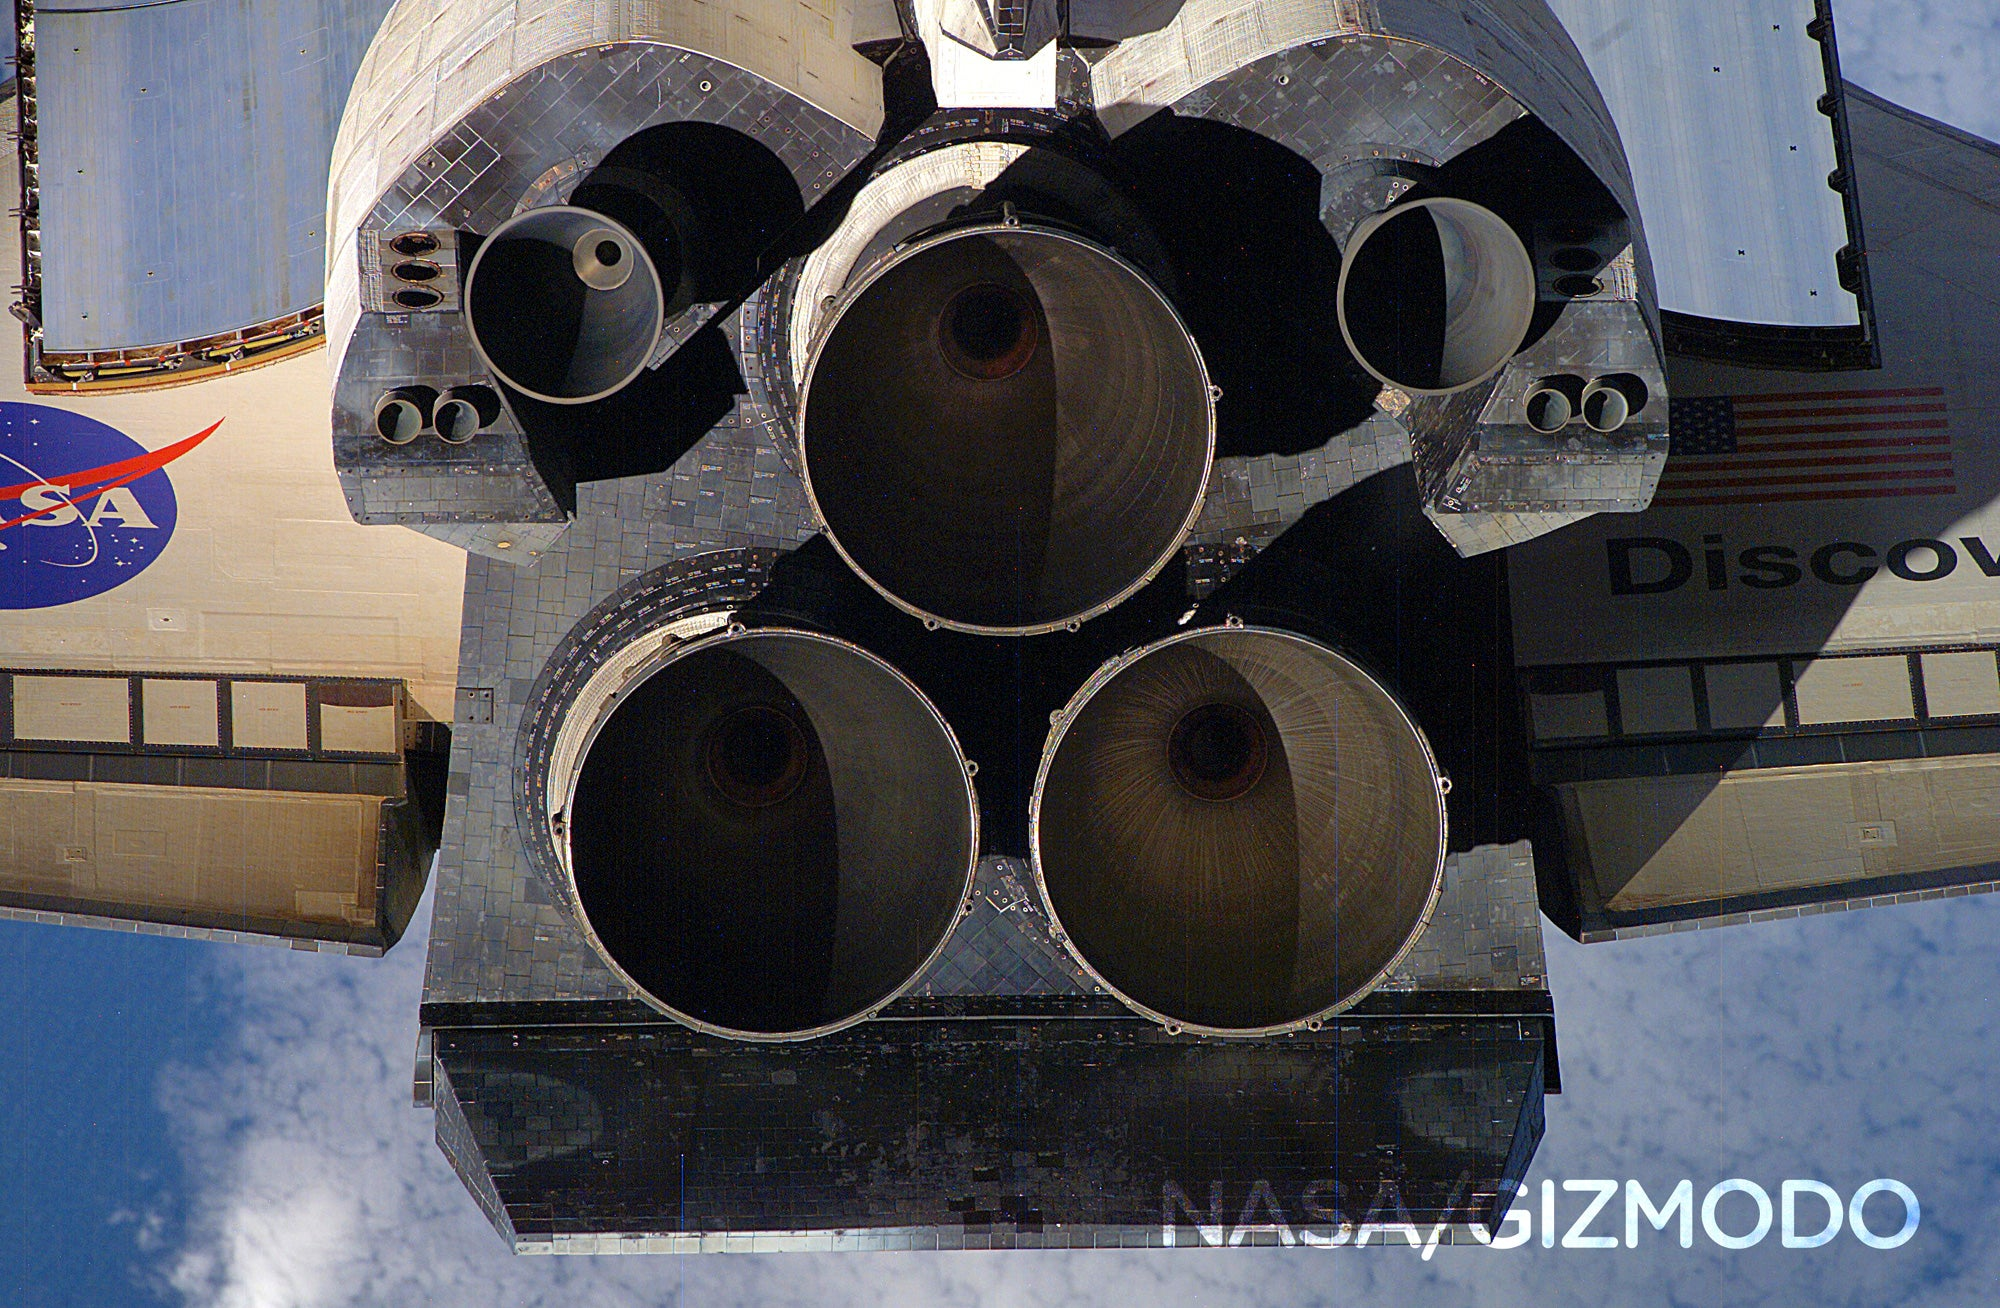 A Rare Look Into the Space Shuttle's Engines